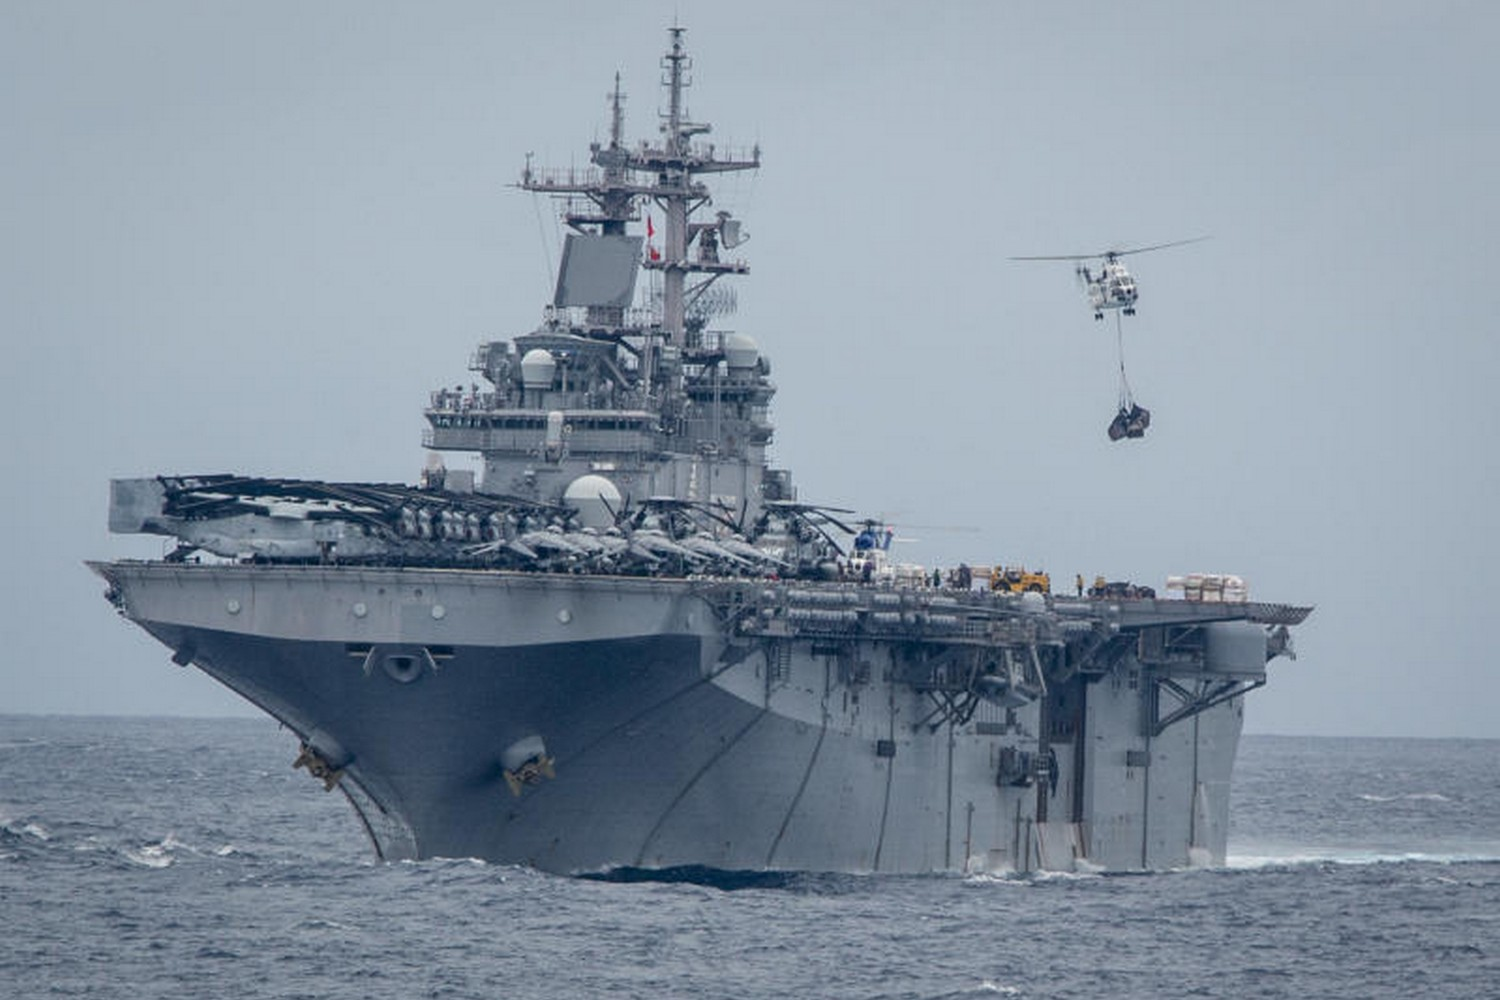 A helicopter delivers supplies to the USS Boxer, an amphibious assault ship, in the Andaman Sea, on June 8, 2019. The US announced the ship downed an Iranian drone near the Strait of Hormuz on Thursday. (Photo: US  Marine Corps via NYT)